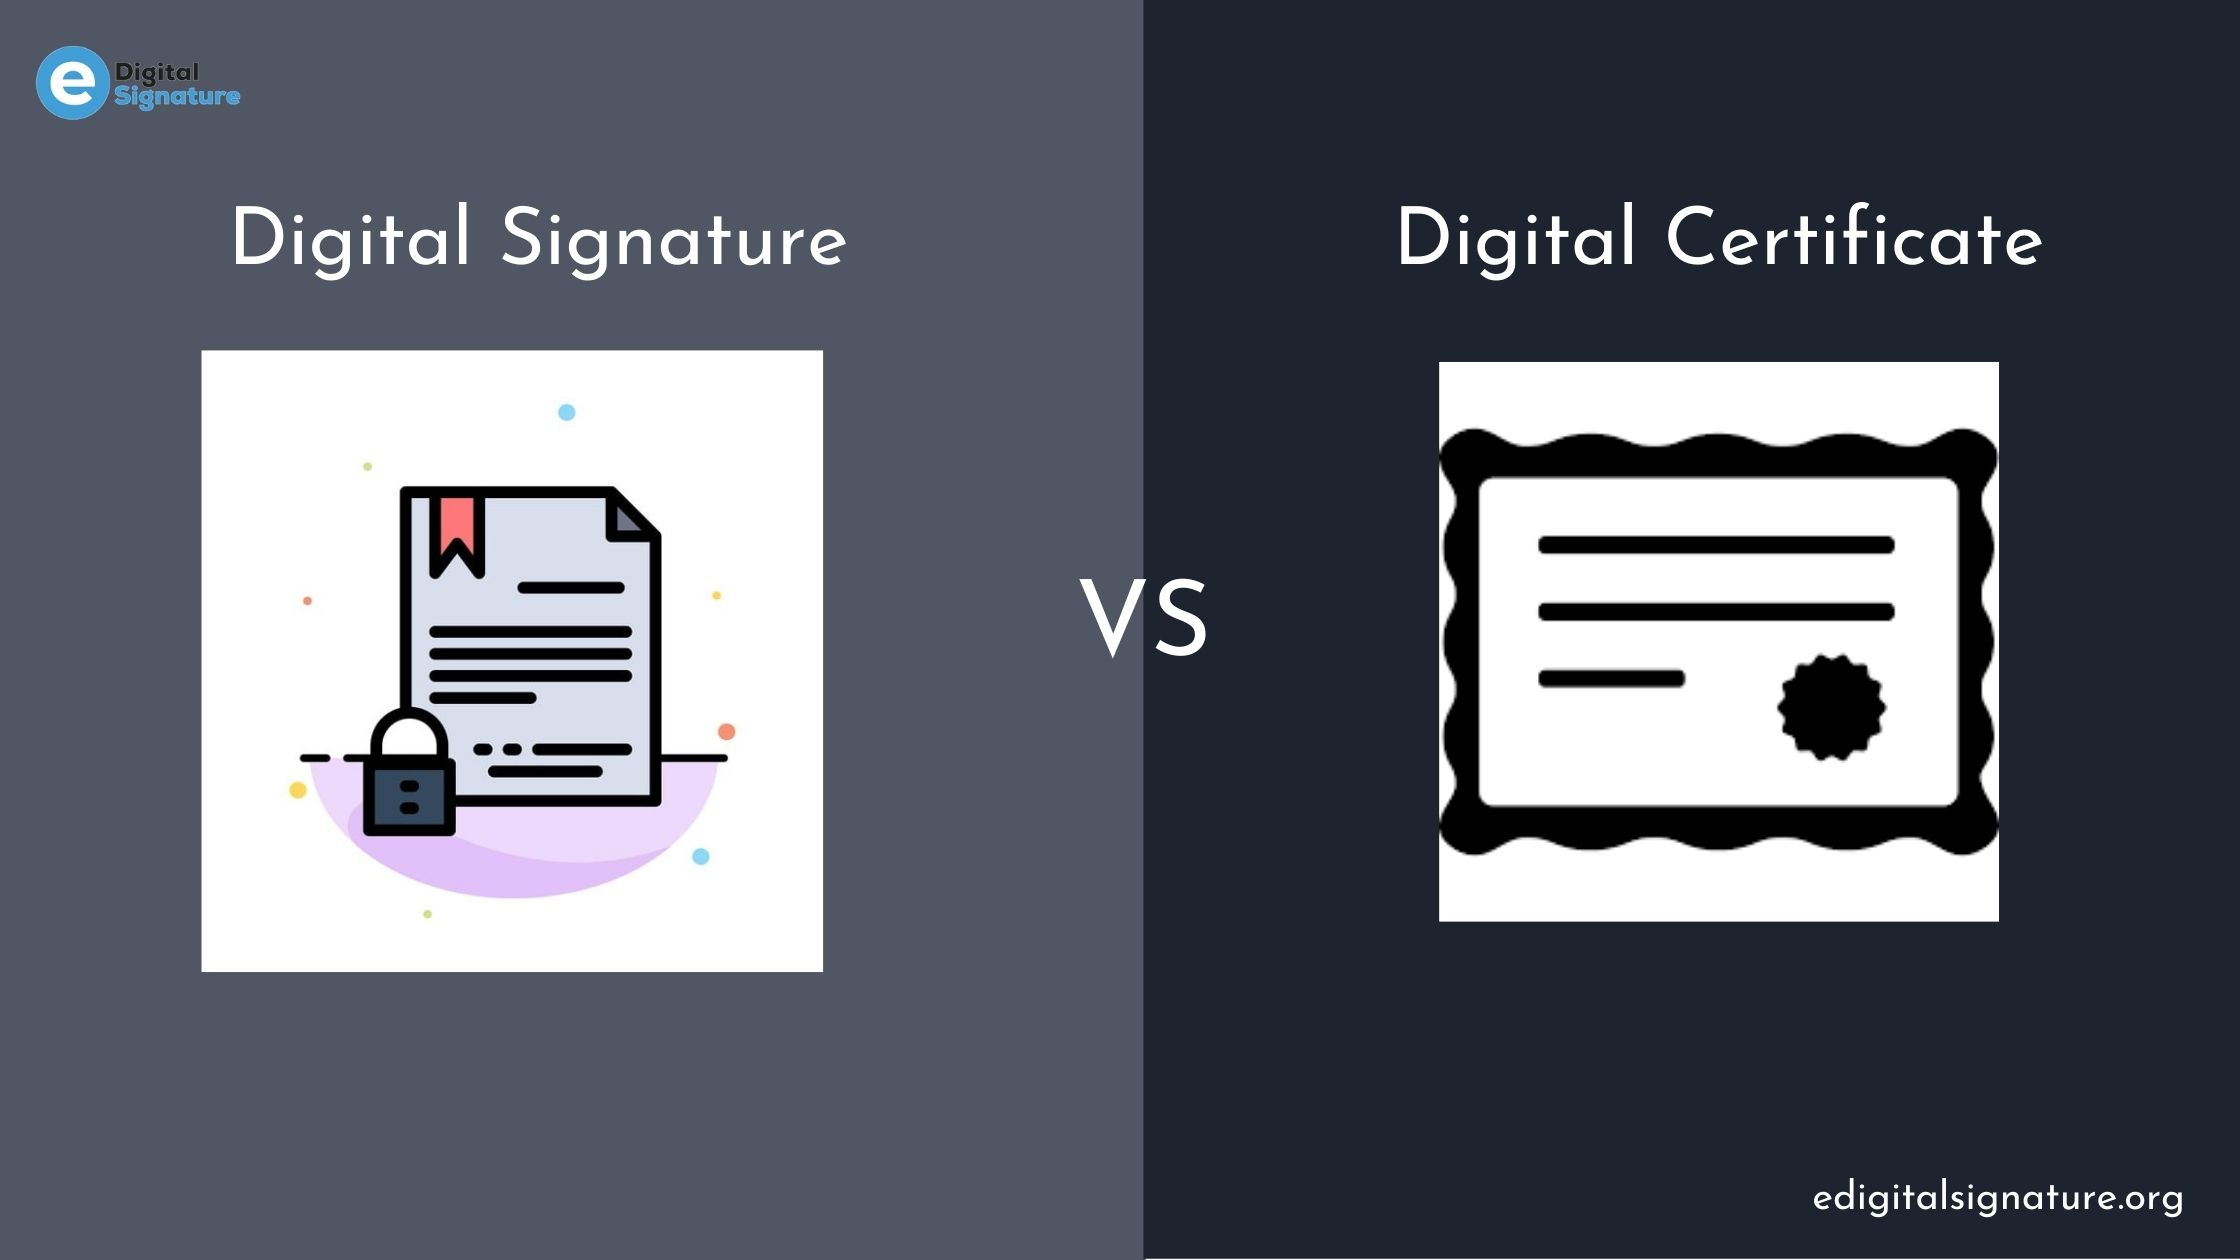 Difference Between Digital Signature and Digital Certificate